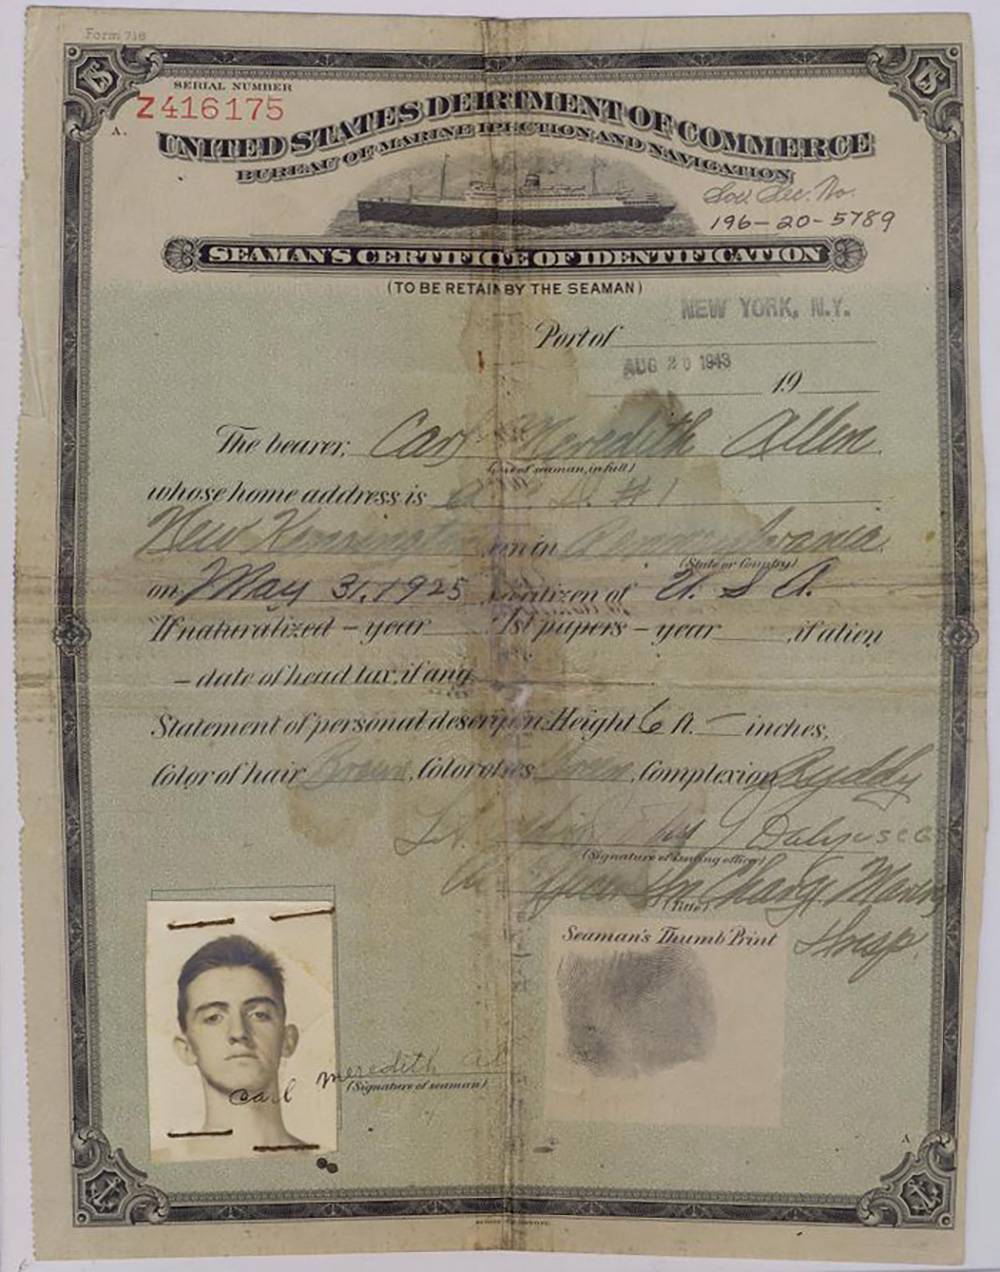 Carl Allen's Seaman's Certificate of Identification